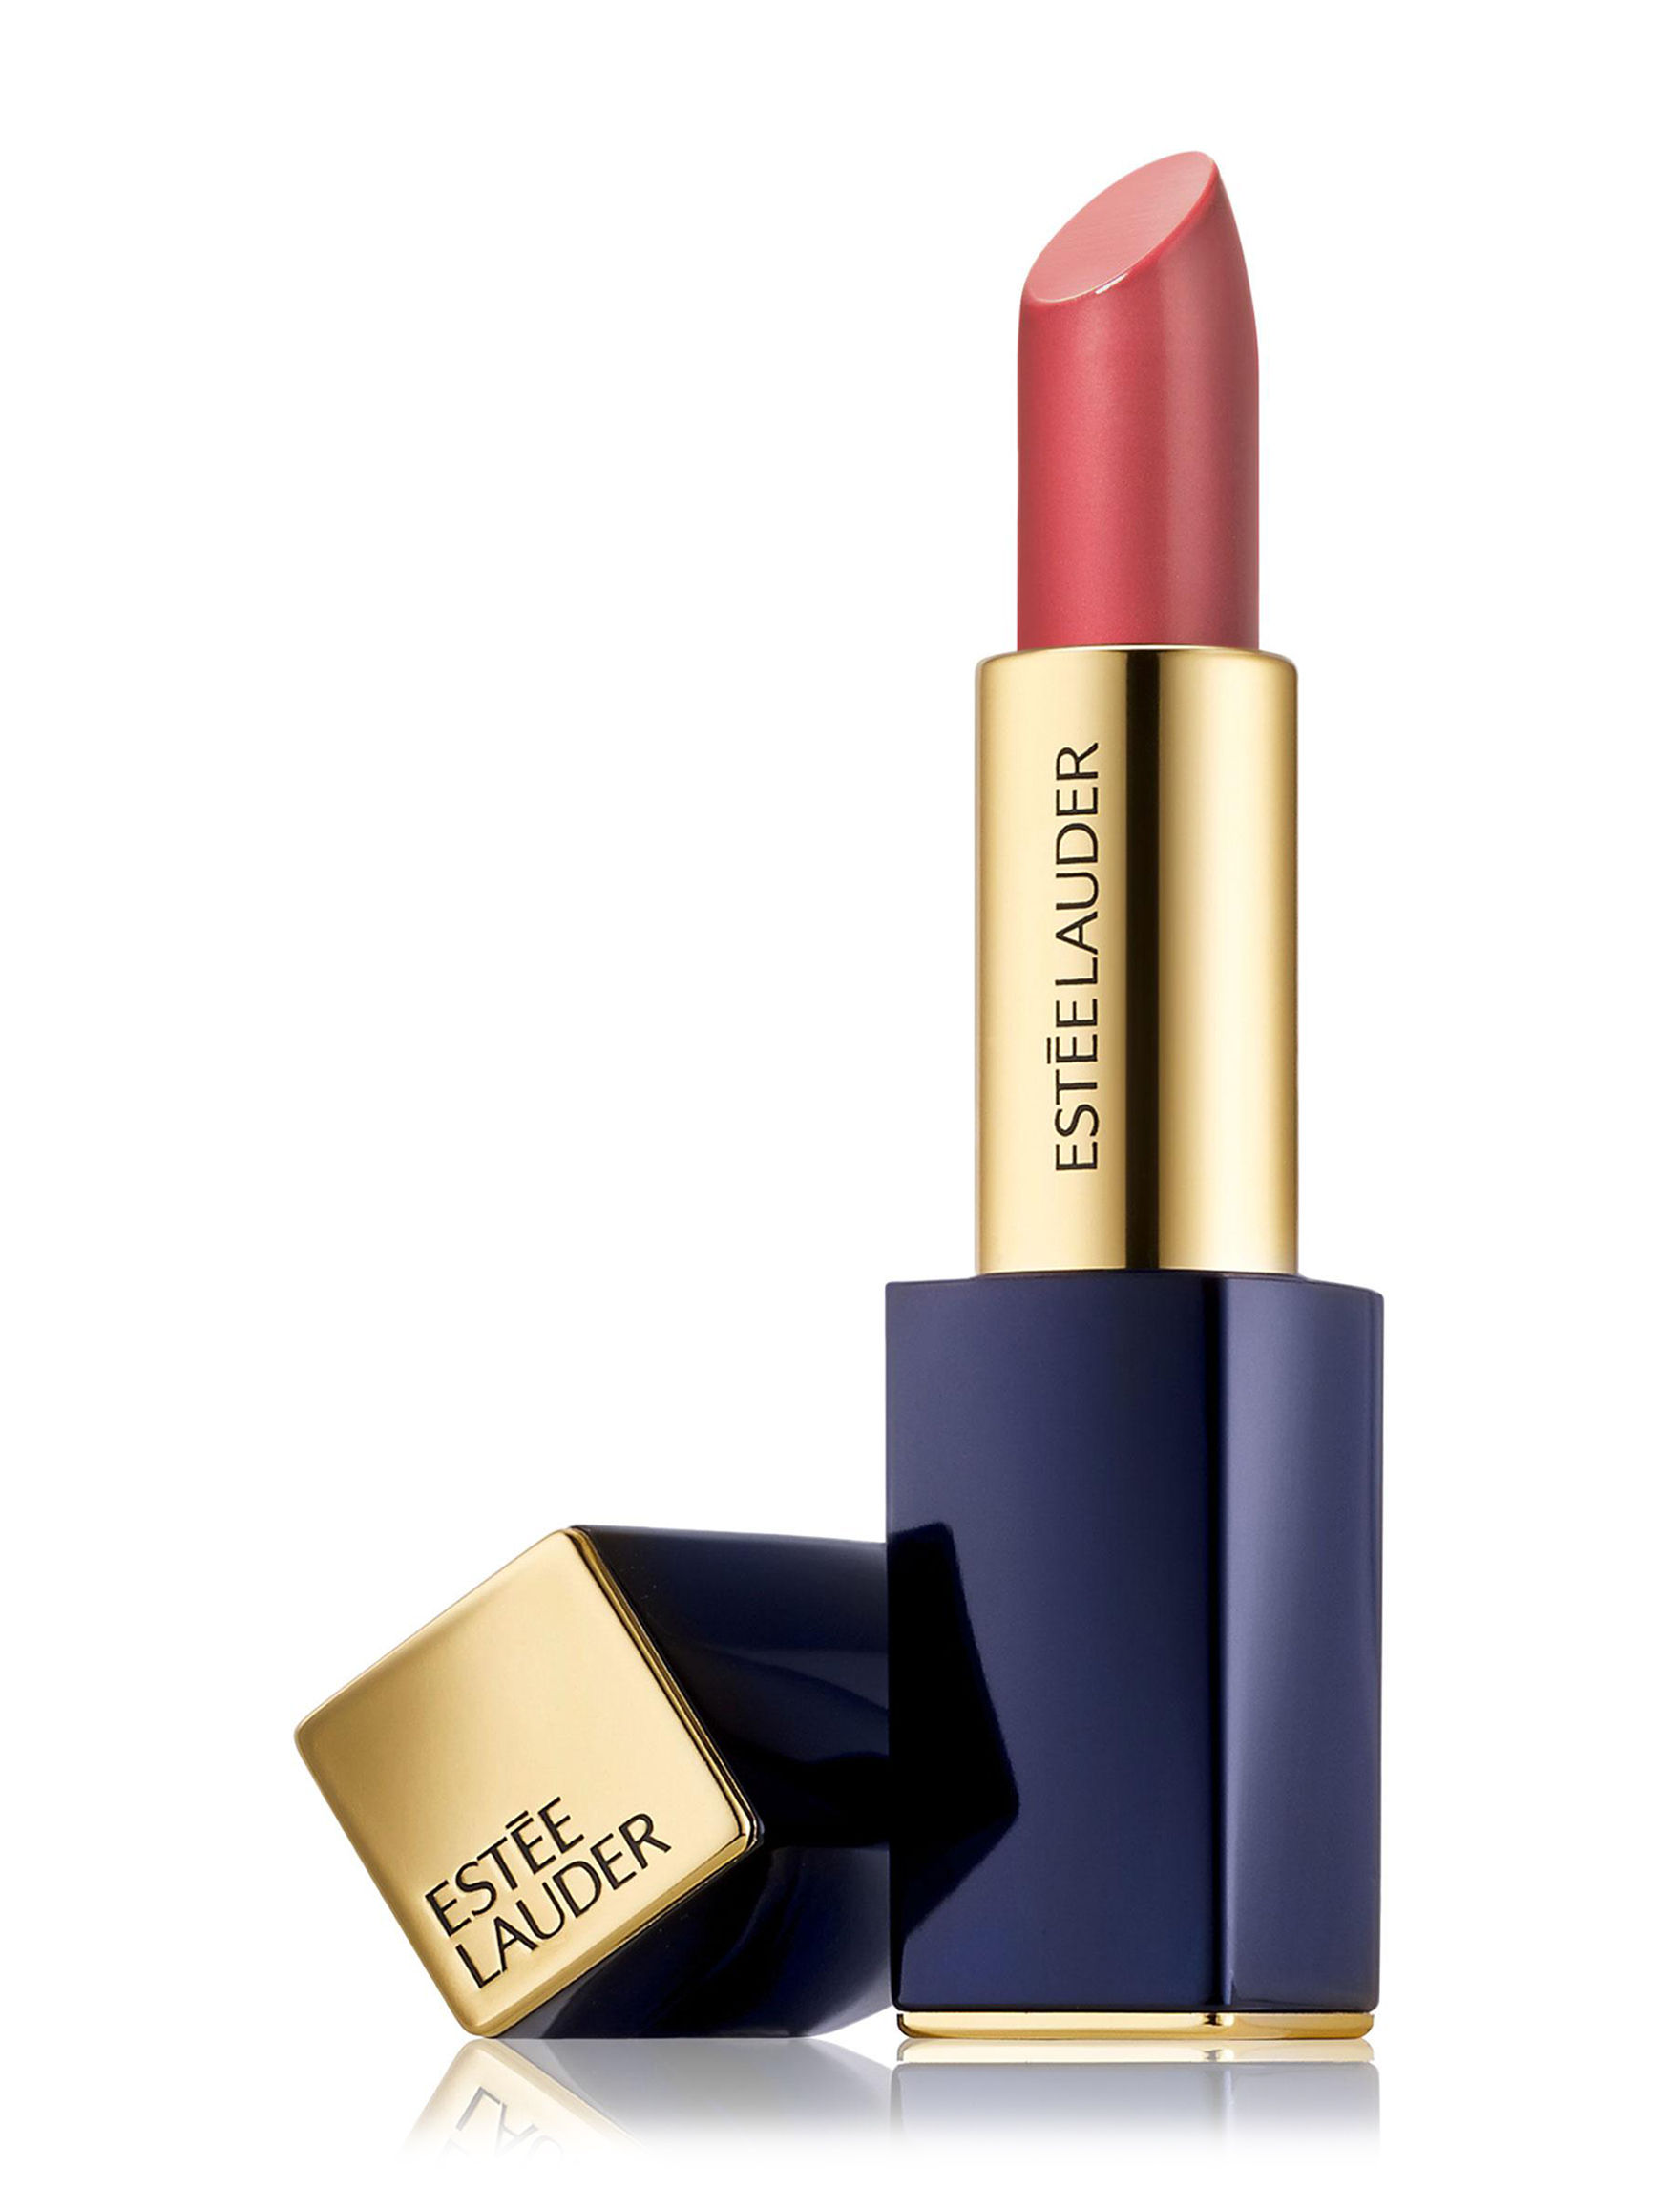 Estee Lauder Above It Lips Lipstick